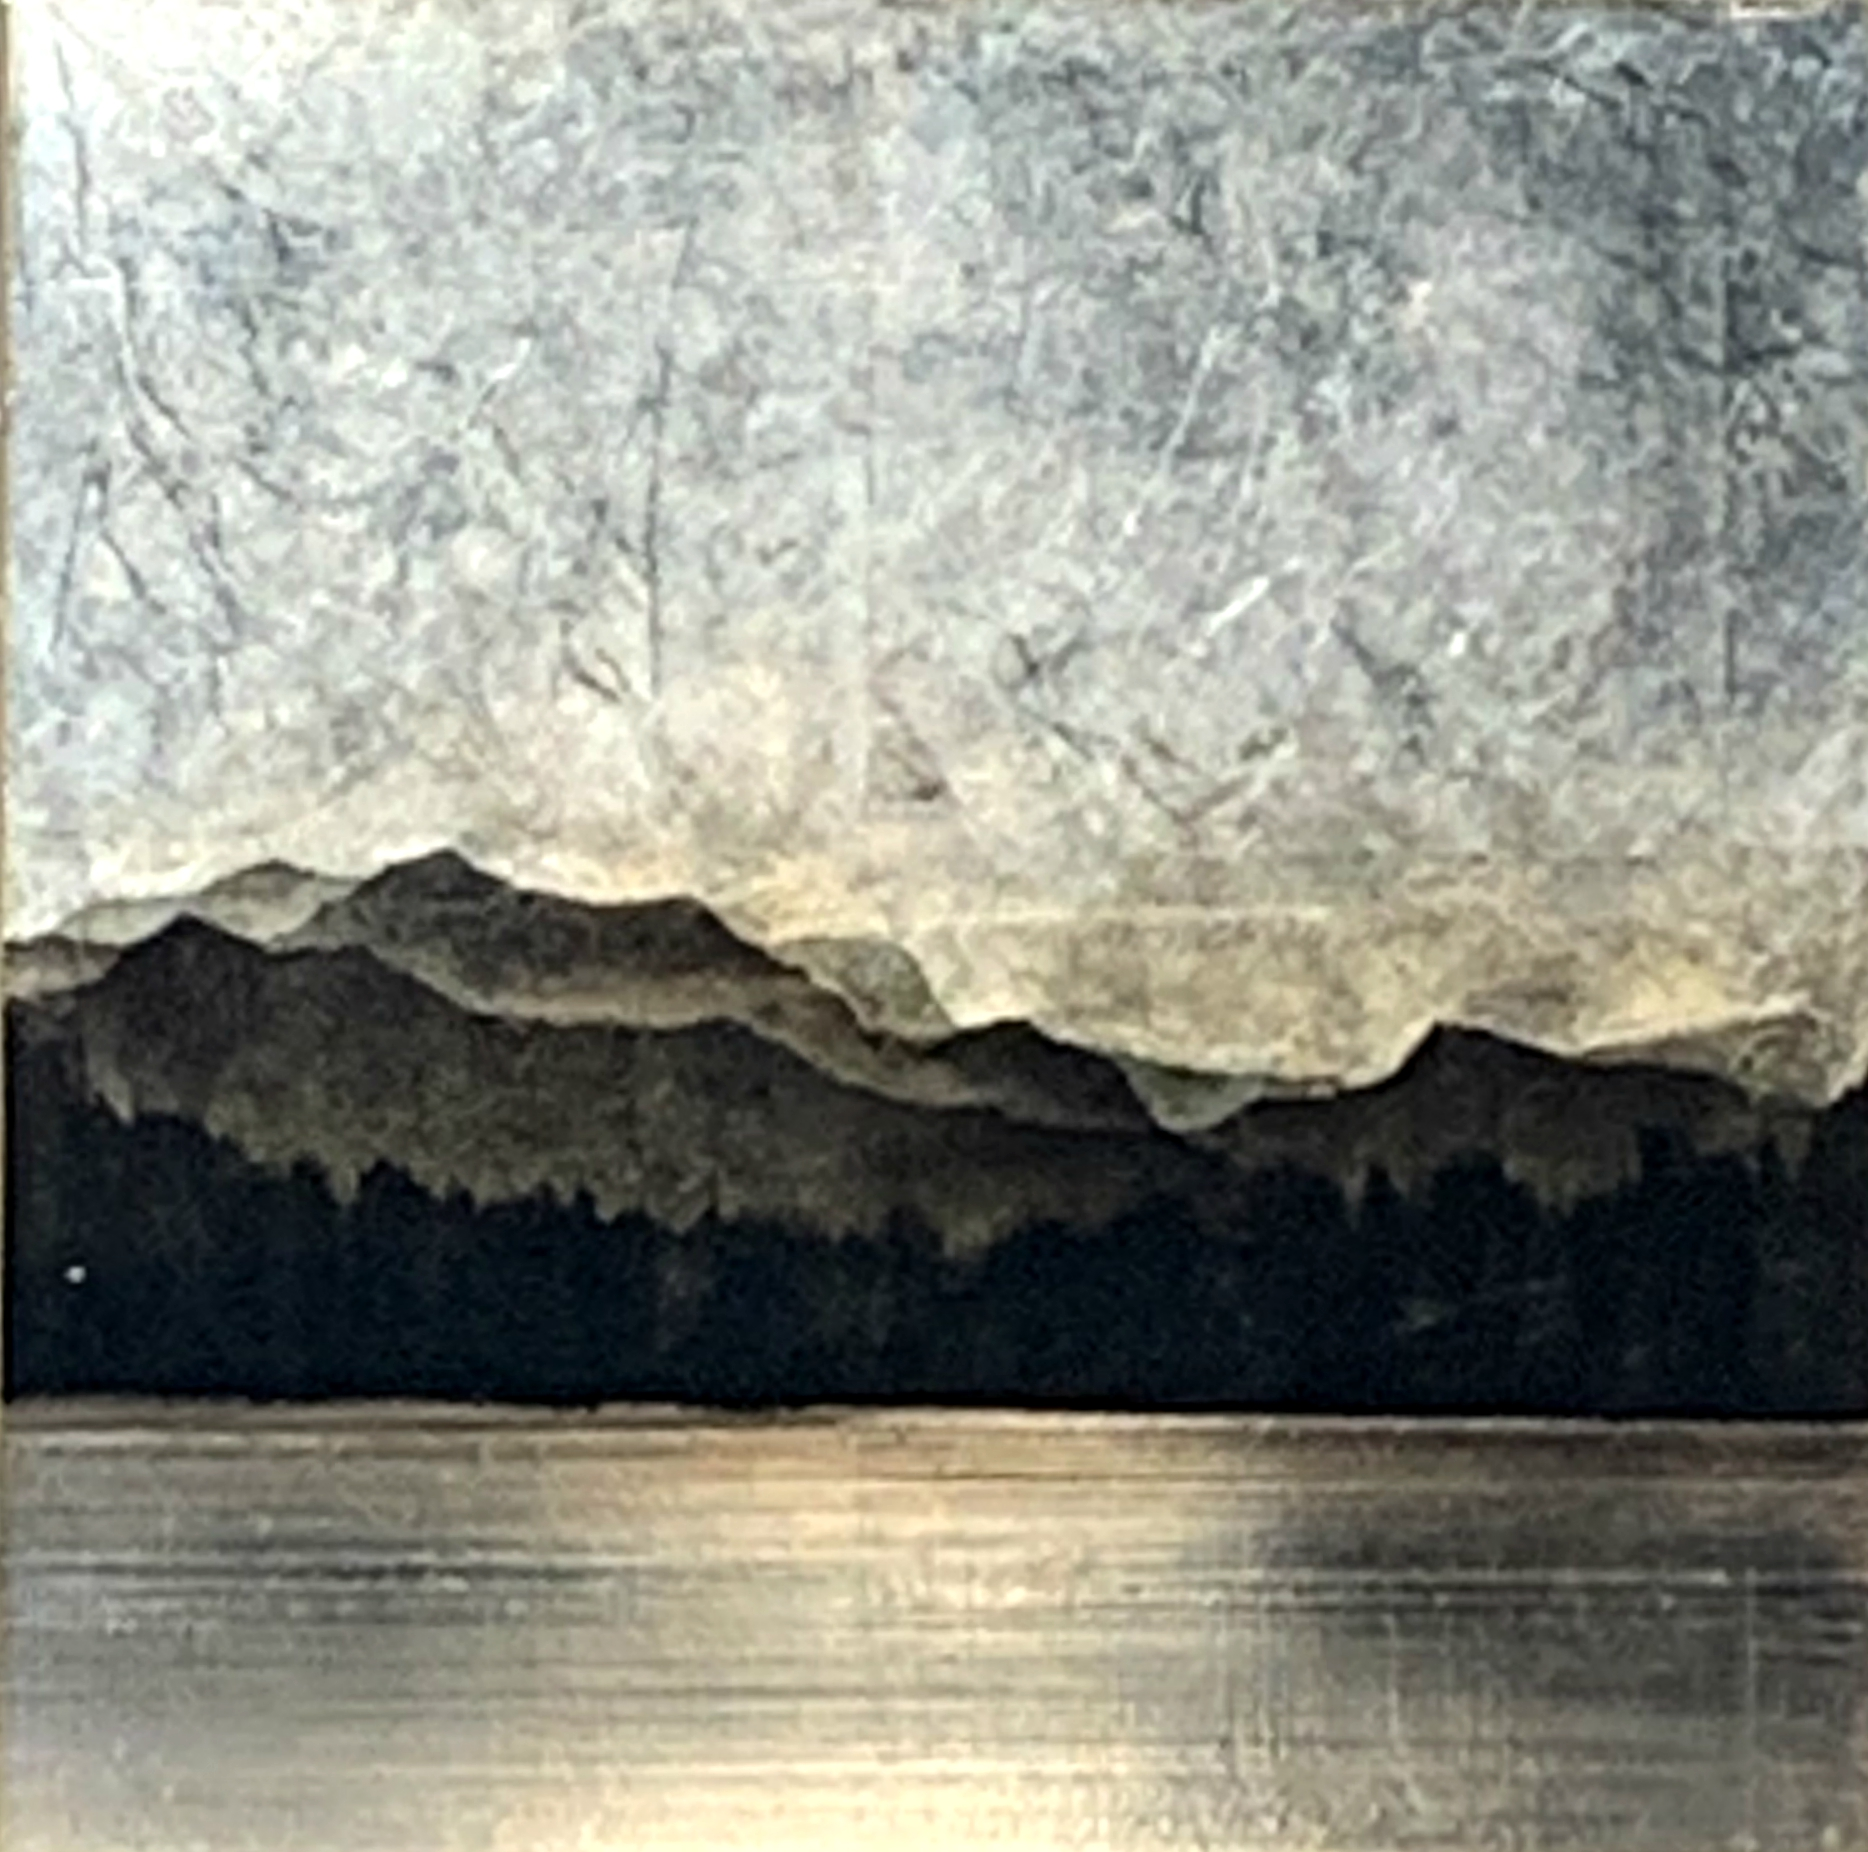 559, mixed media landscape painting by David Graff | Effusion Art Gallery + Cast Glass Studio, Invermere BC